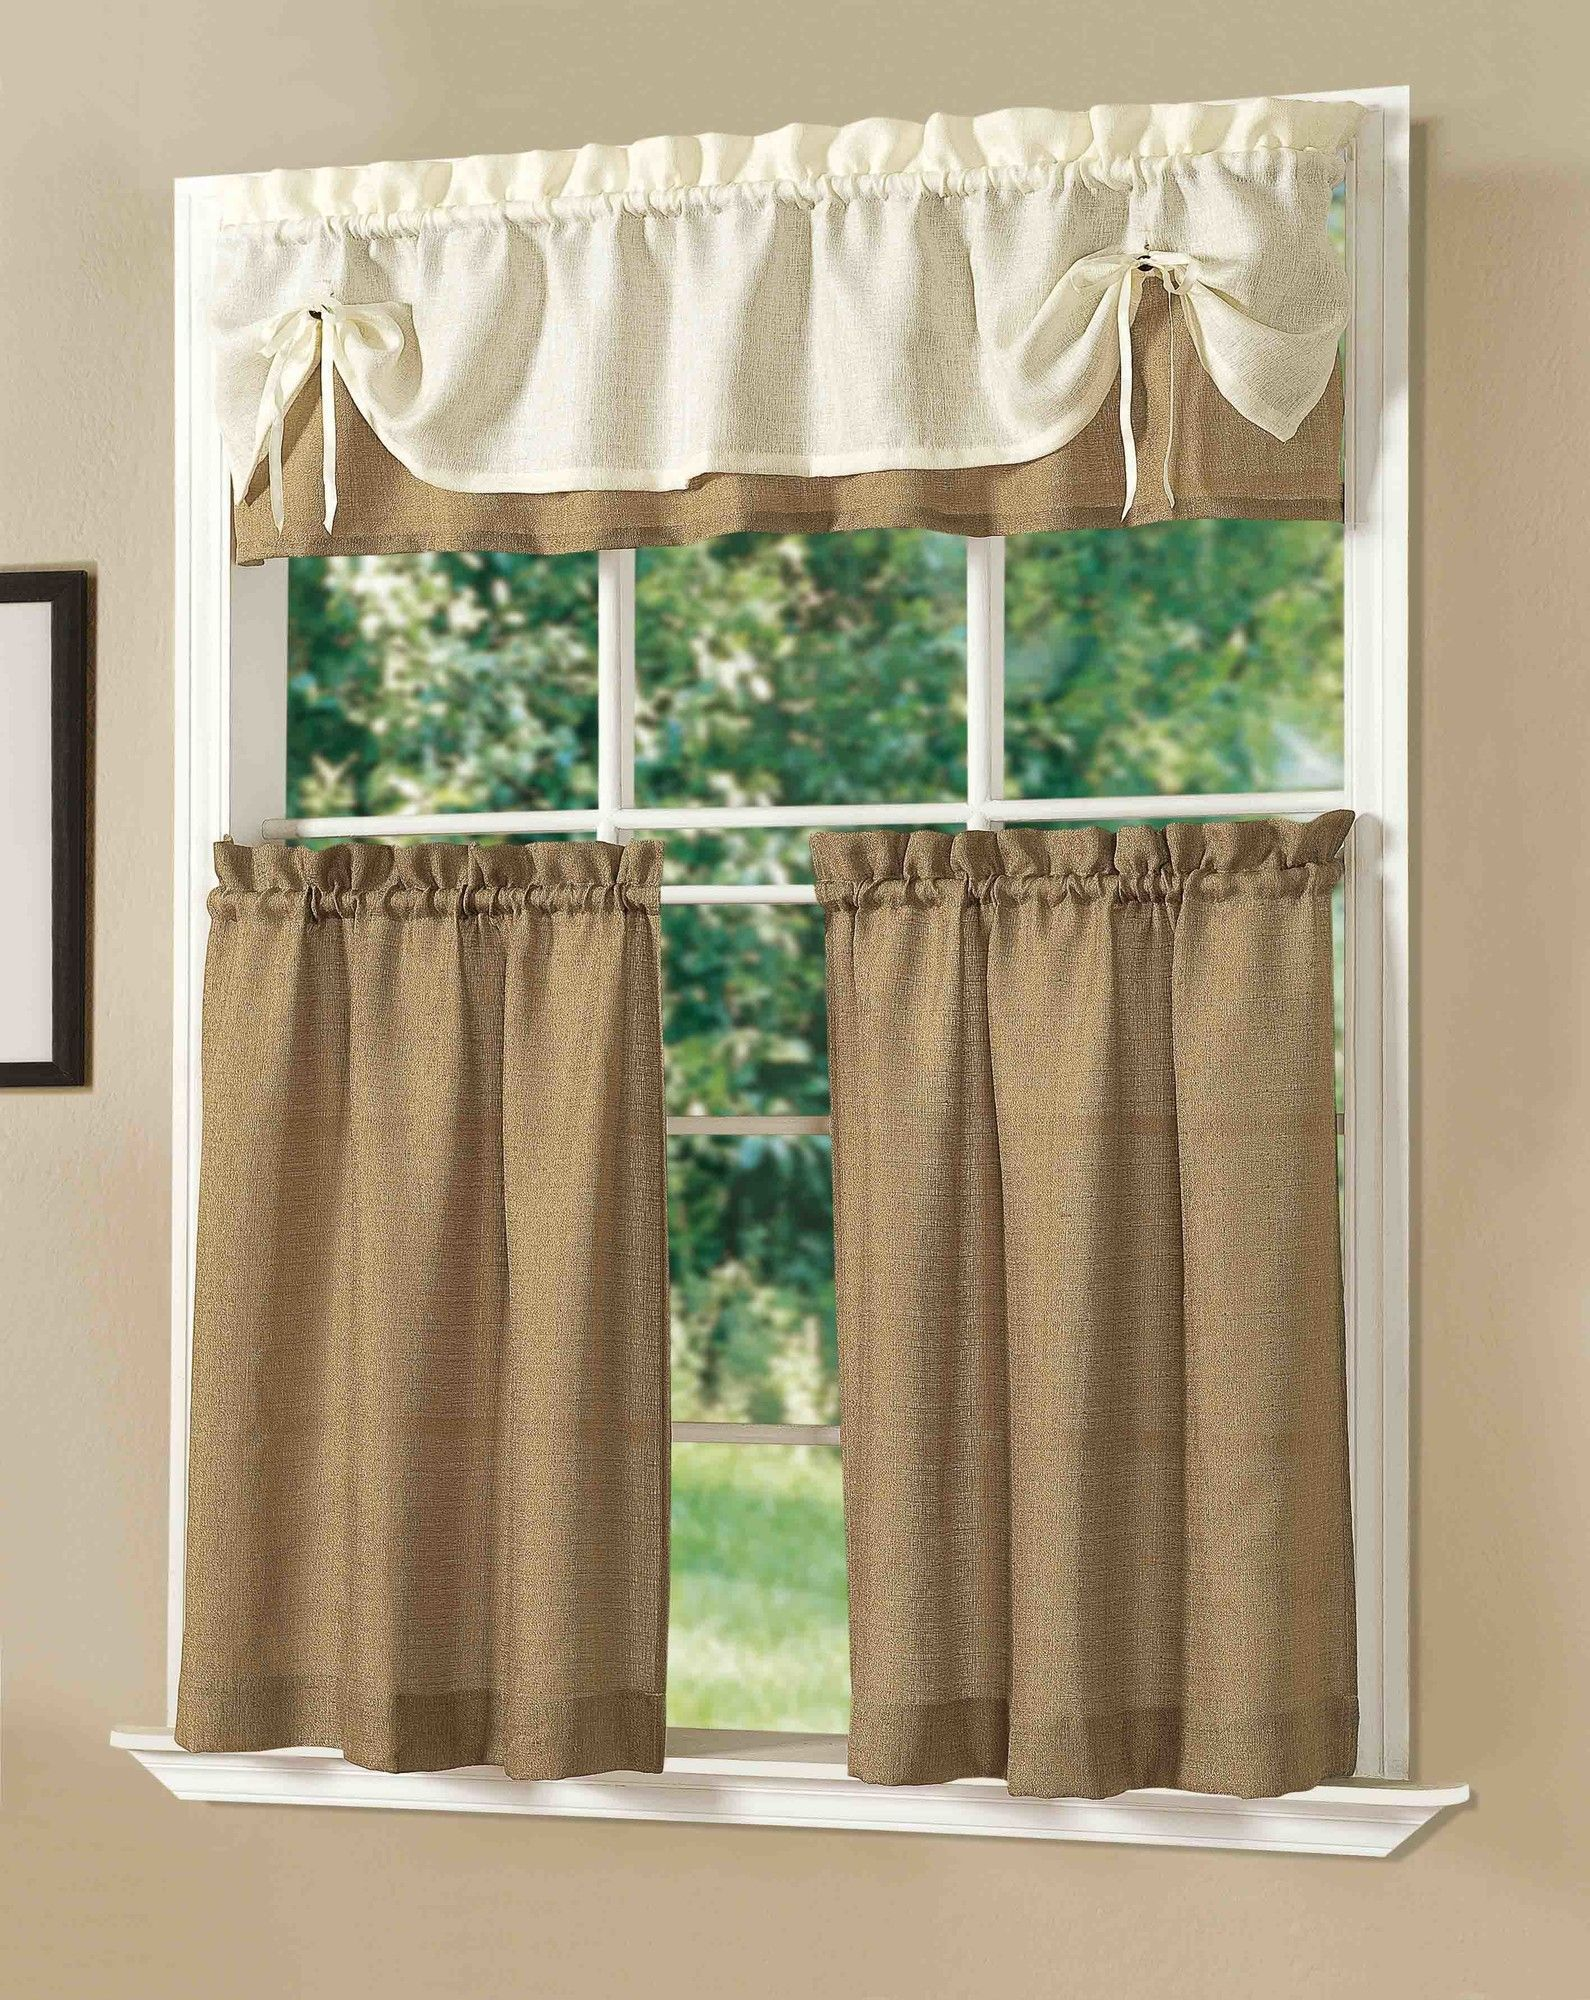 Kitchen sunrise curtain set u pinteresu